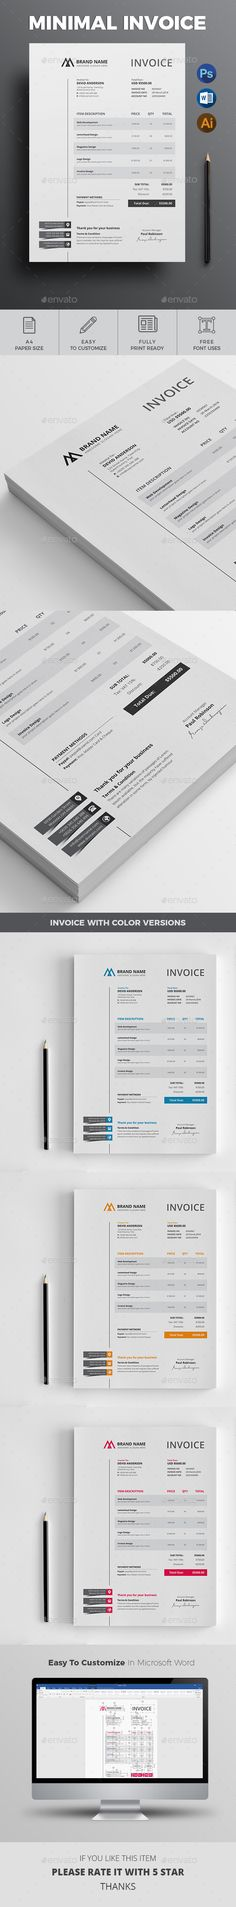 Service Billing Template for Germany company invoice Pinterest - customize invoice